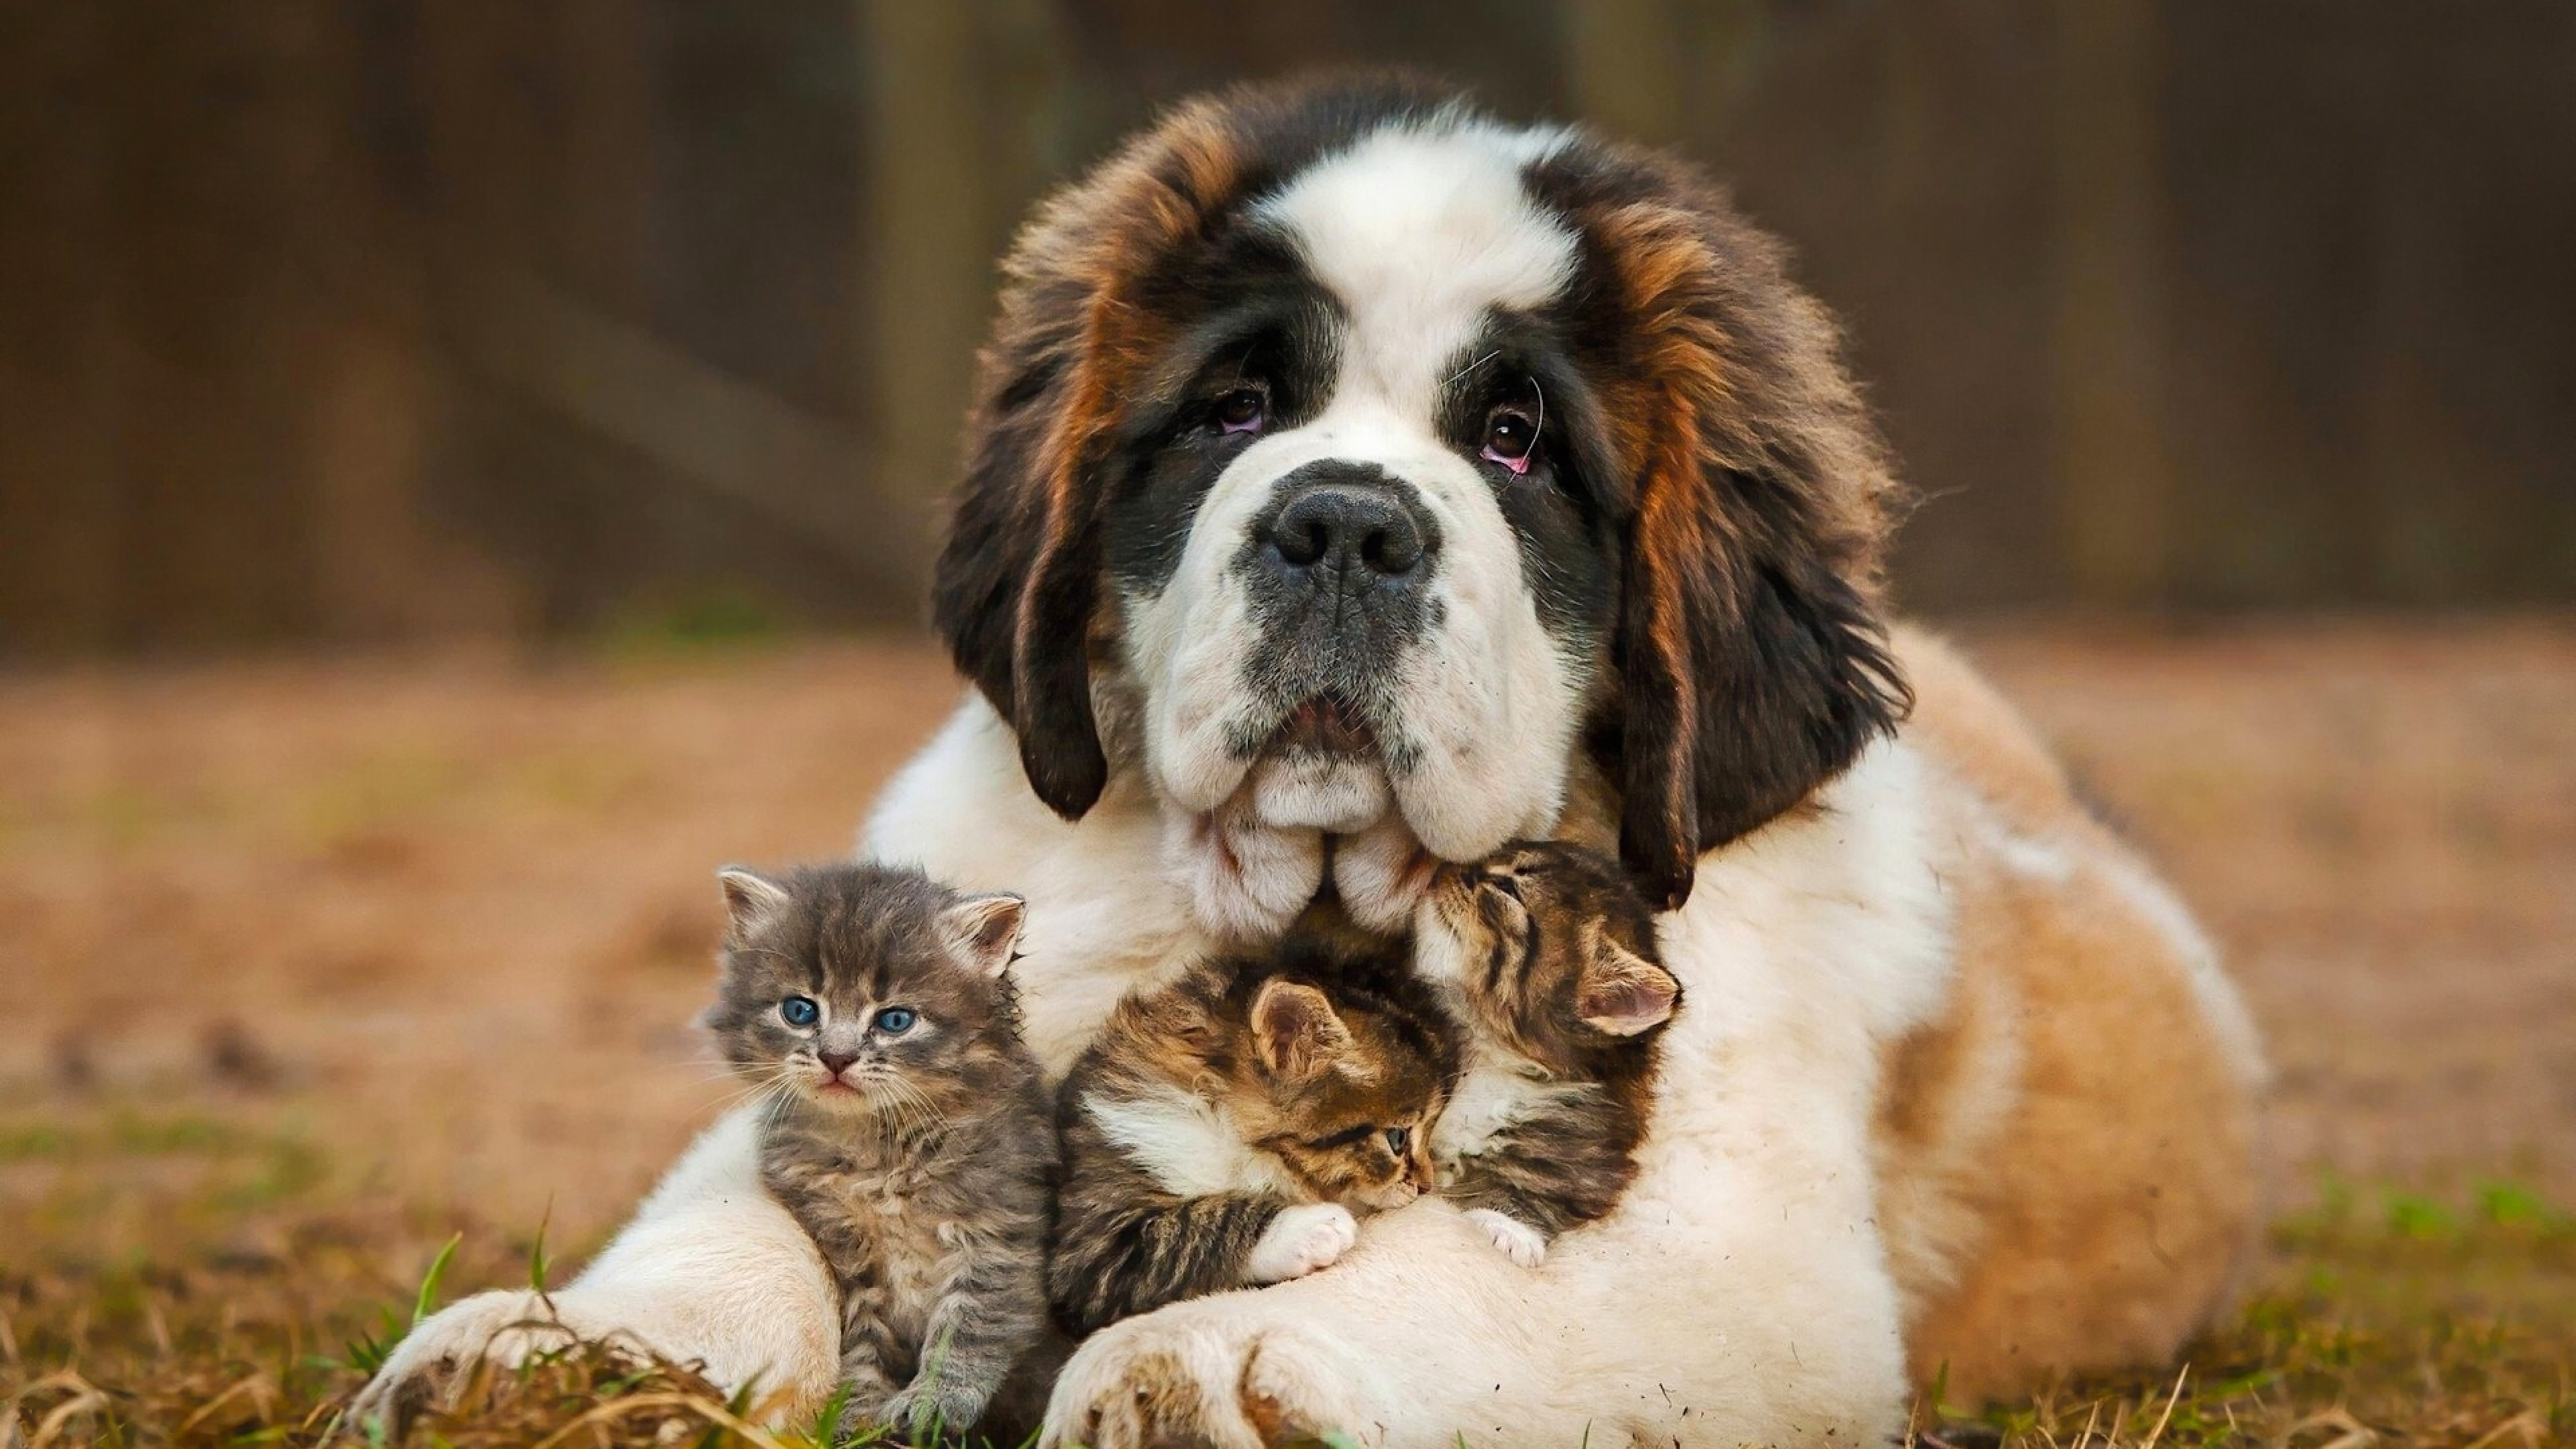 saint bernad playing with kittens 4k 1542237742 - Saint Bernad Playing With Kittens 4k - saint bernard wallpapers, dog wallpapers, animals wallpapers